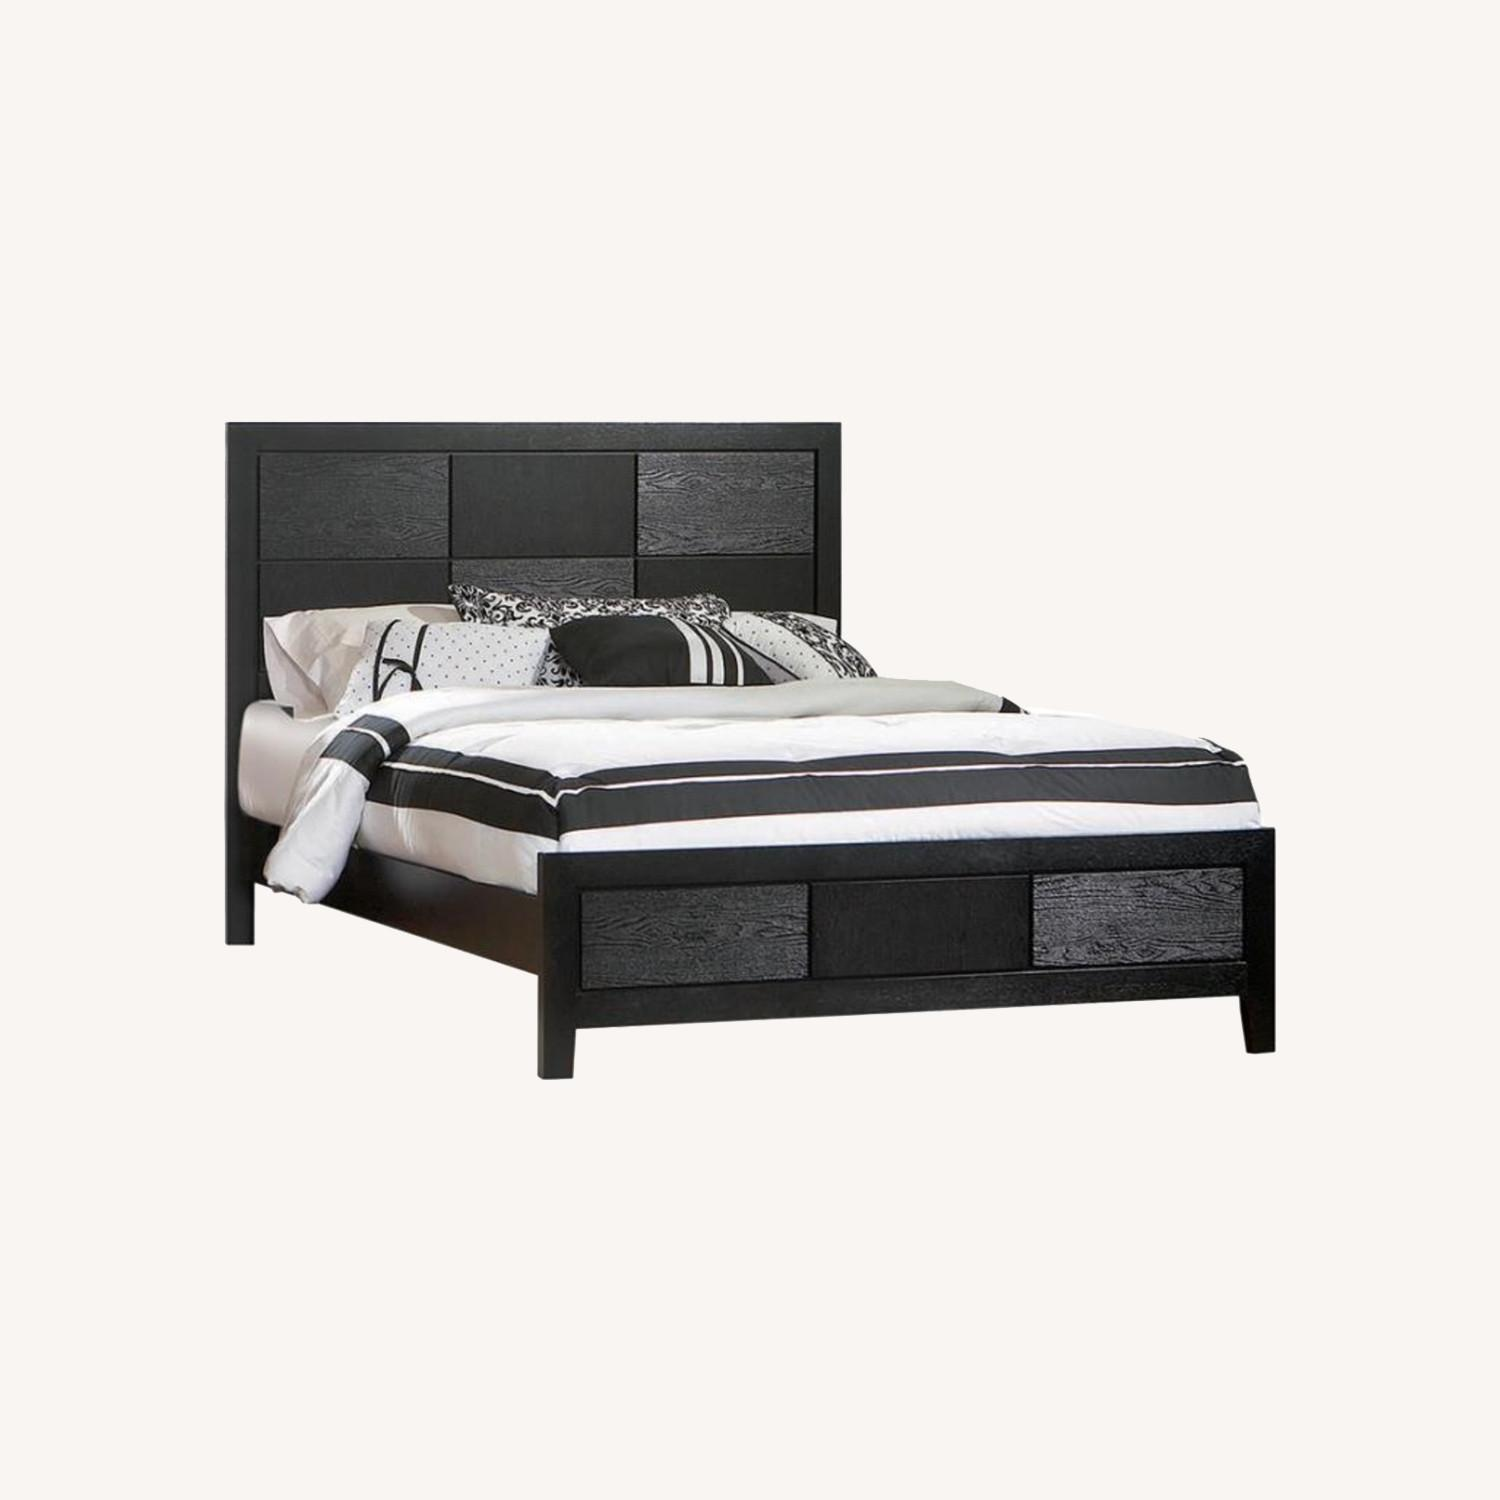 King Bed In Black W/ Geometric Checkered Detail - image-4